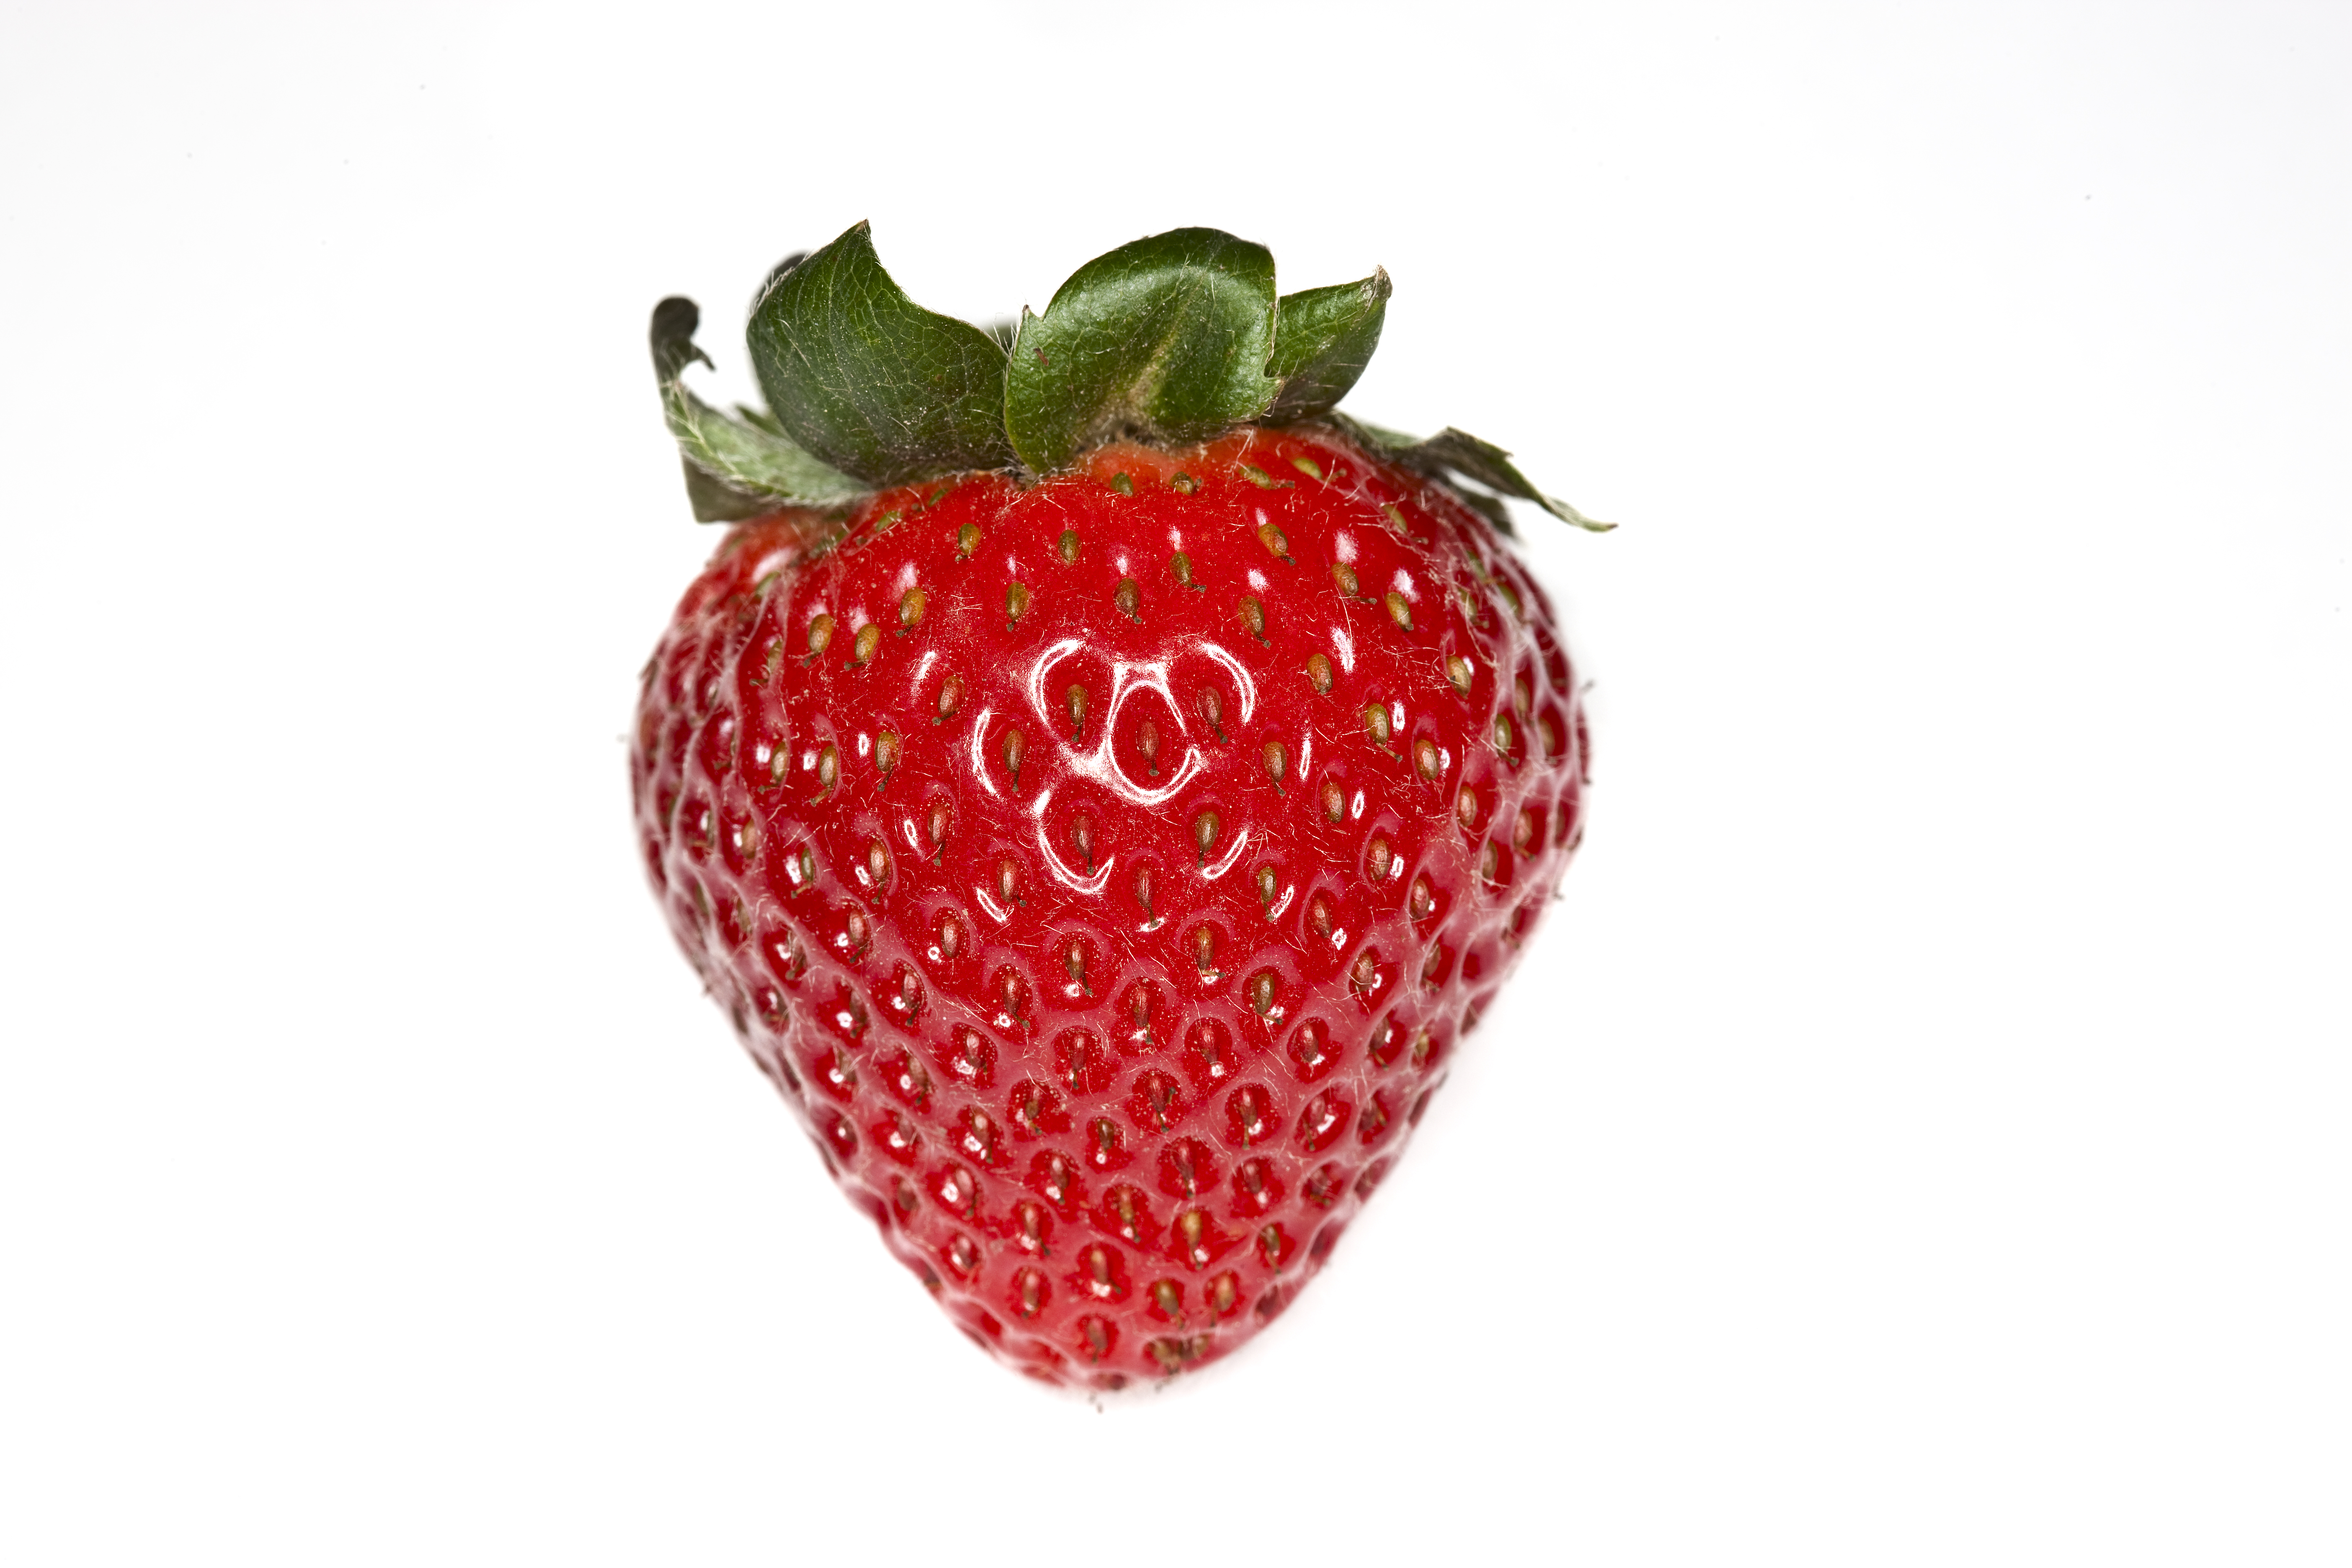 Strawberry Wallpapers High Quality   Download Free